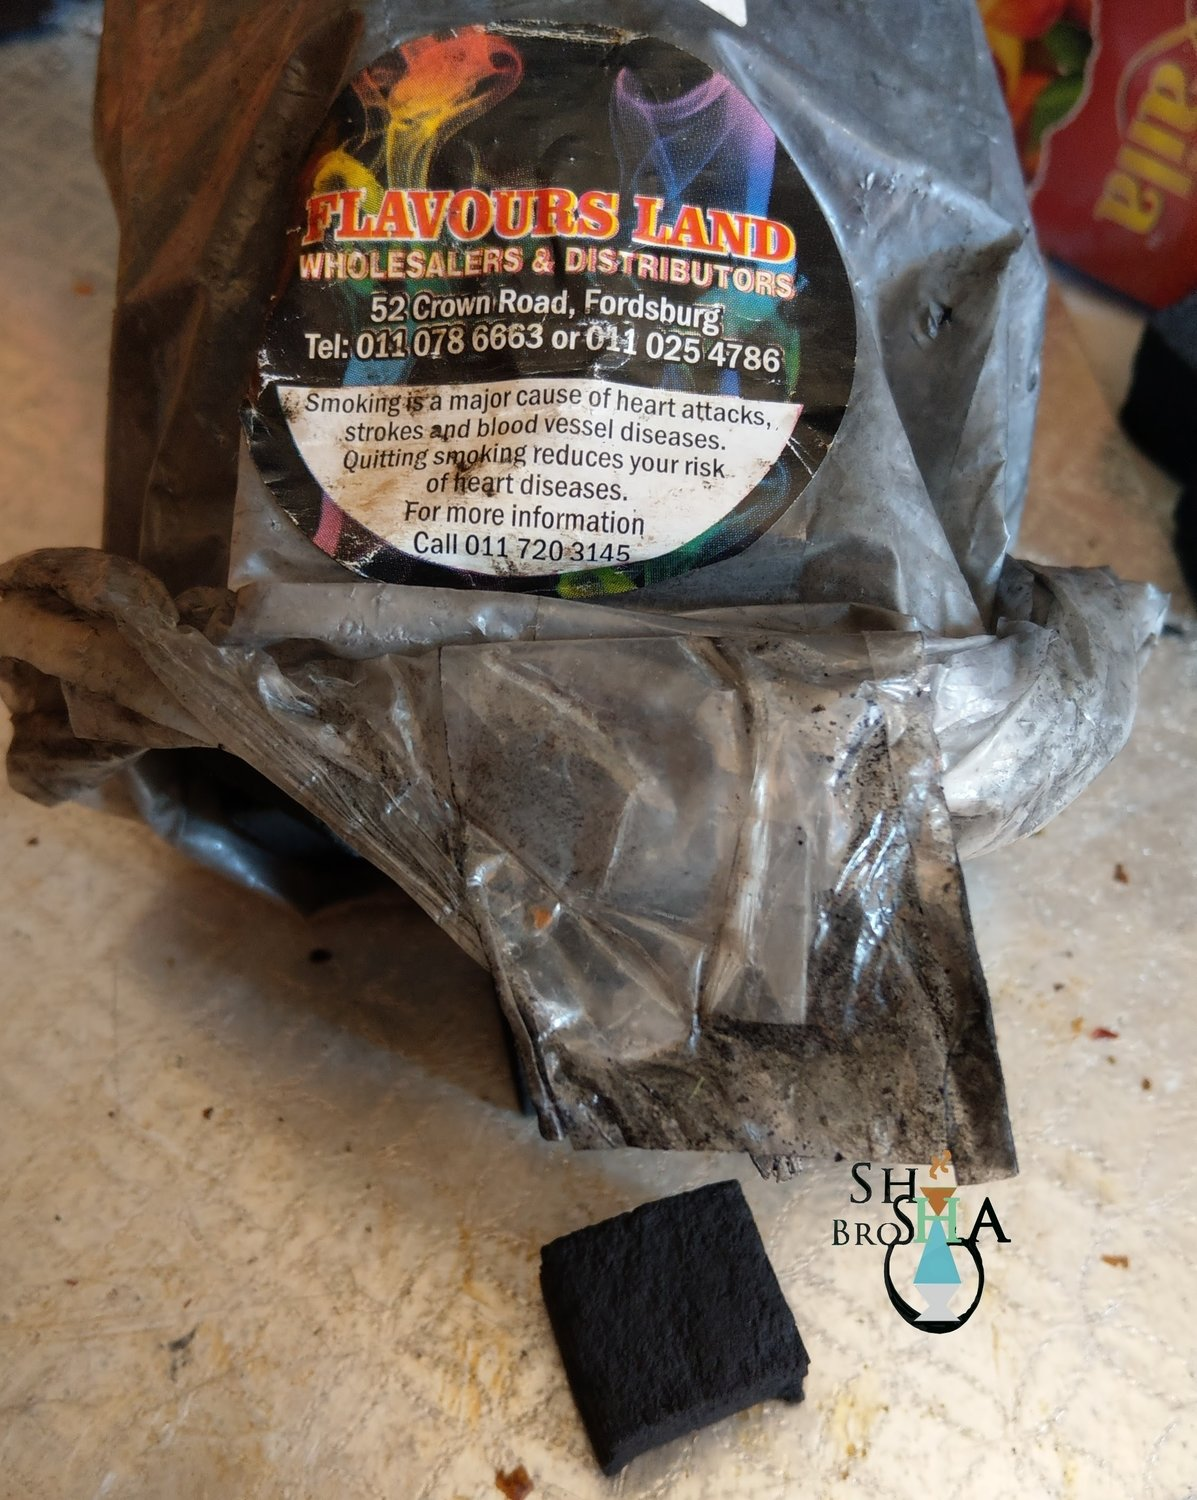 COCO NAR Coconut Coal 1kg (Previously Flavours Land)